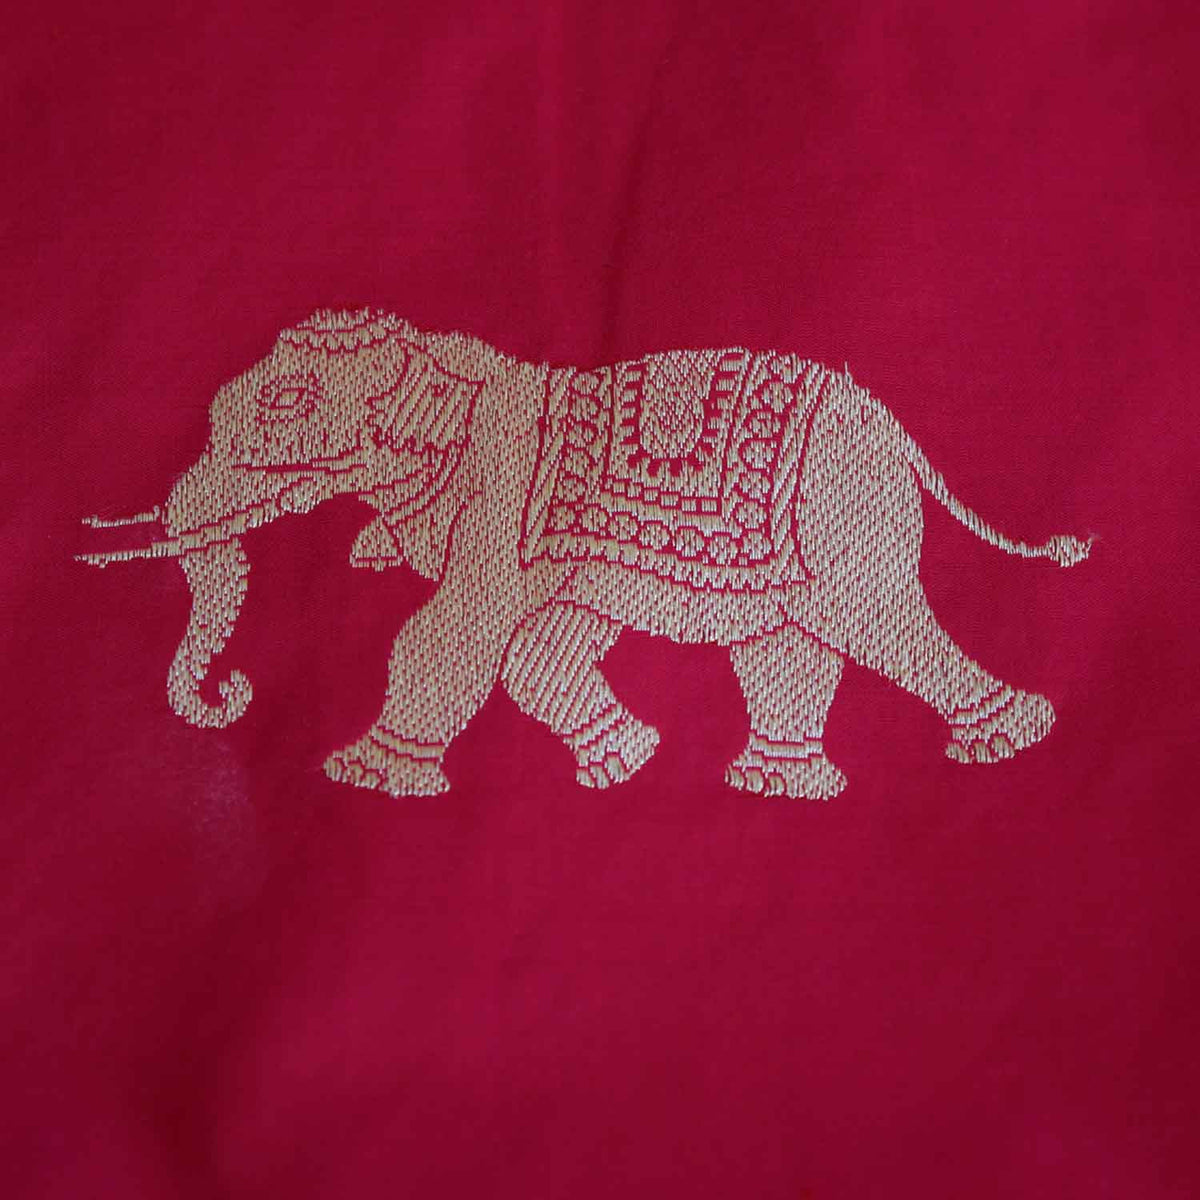 Red-Indian Pink Pure Katan Silk Banarasi Handloom Saree - Tilfi - 4